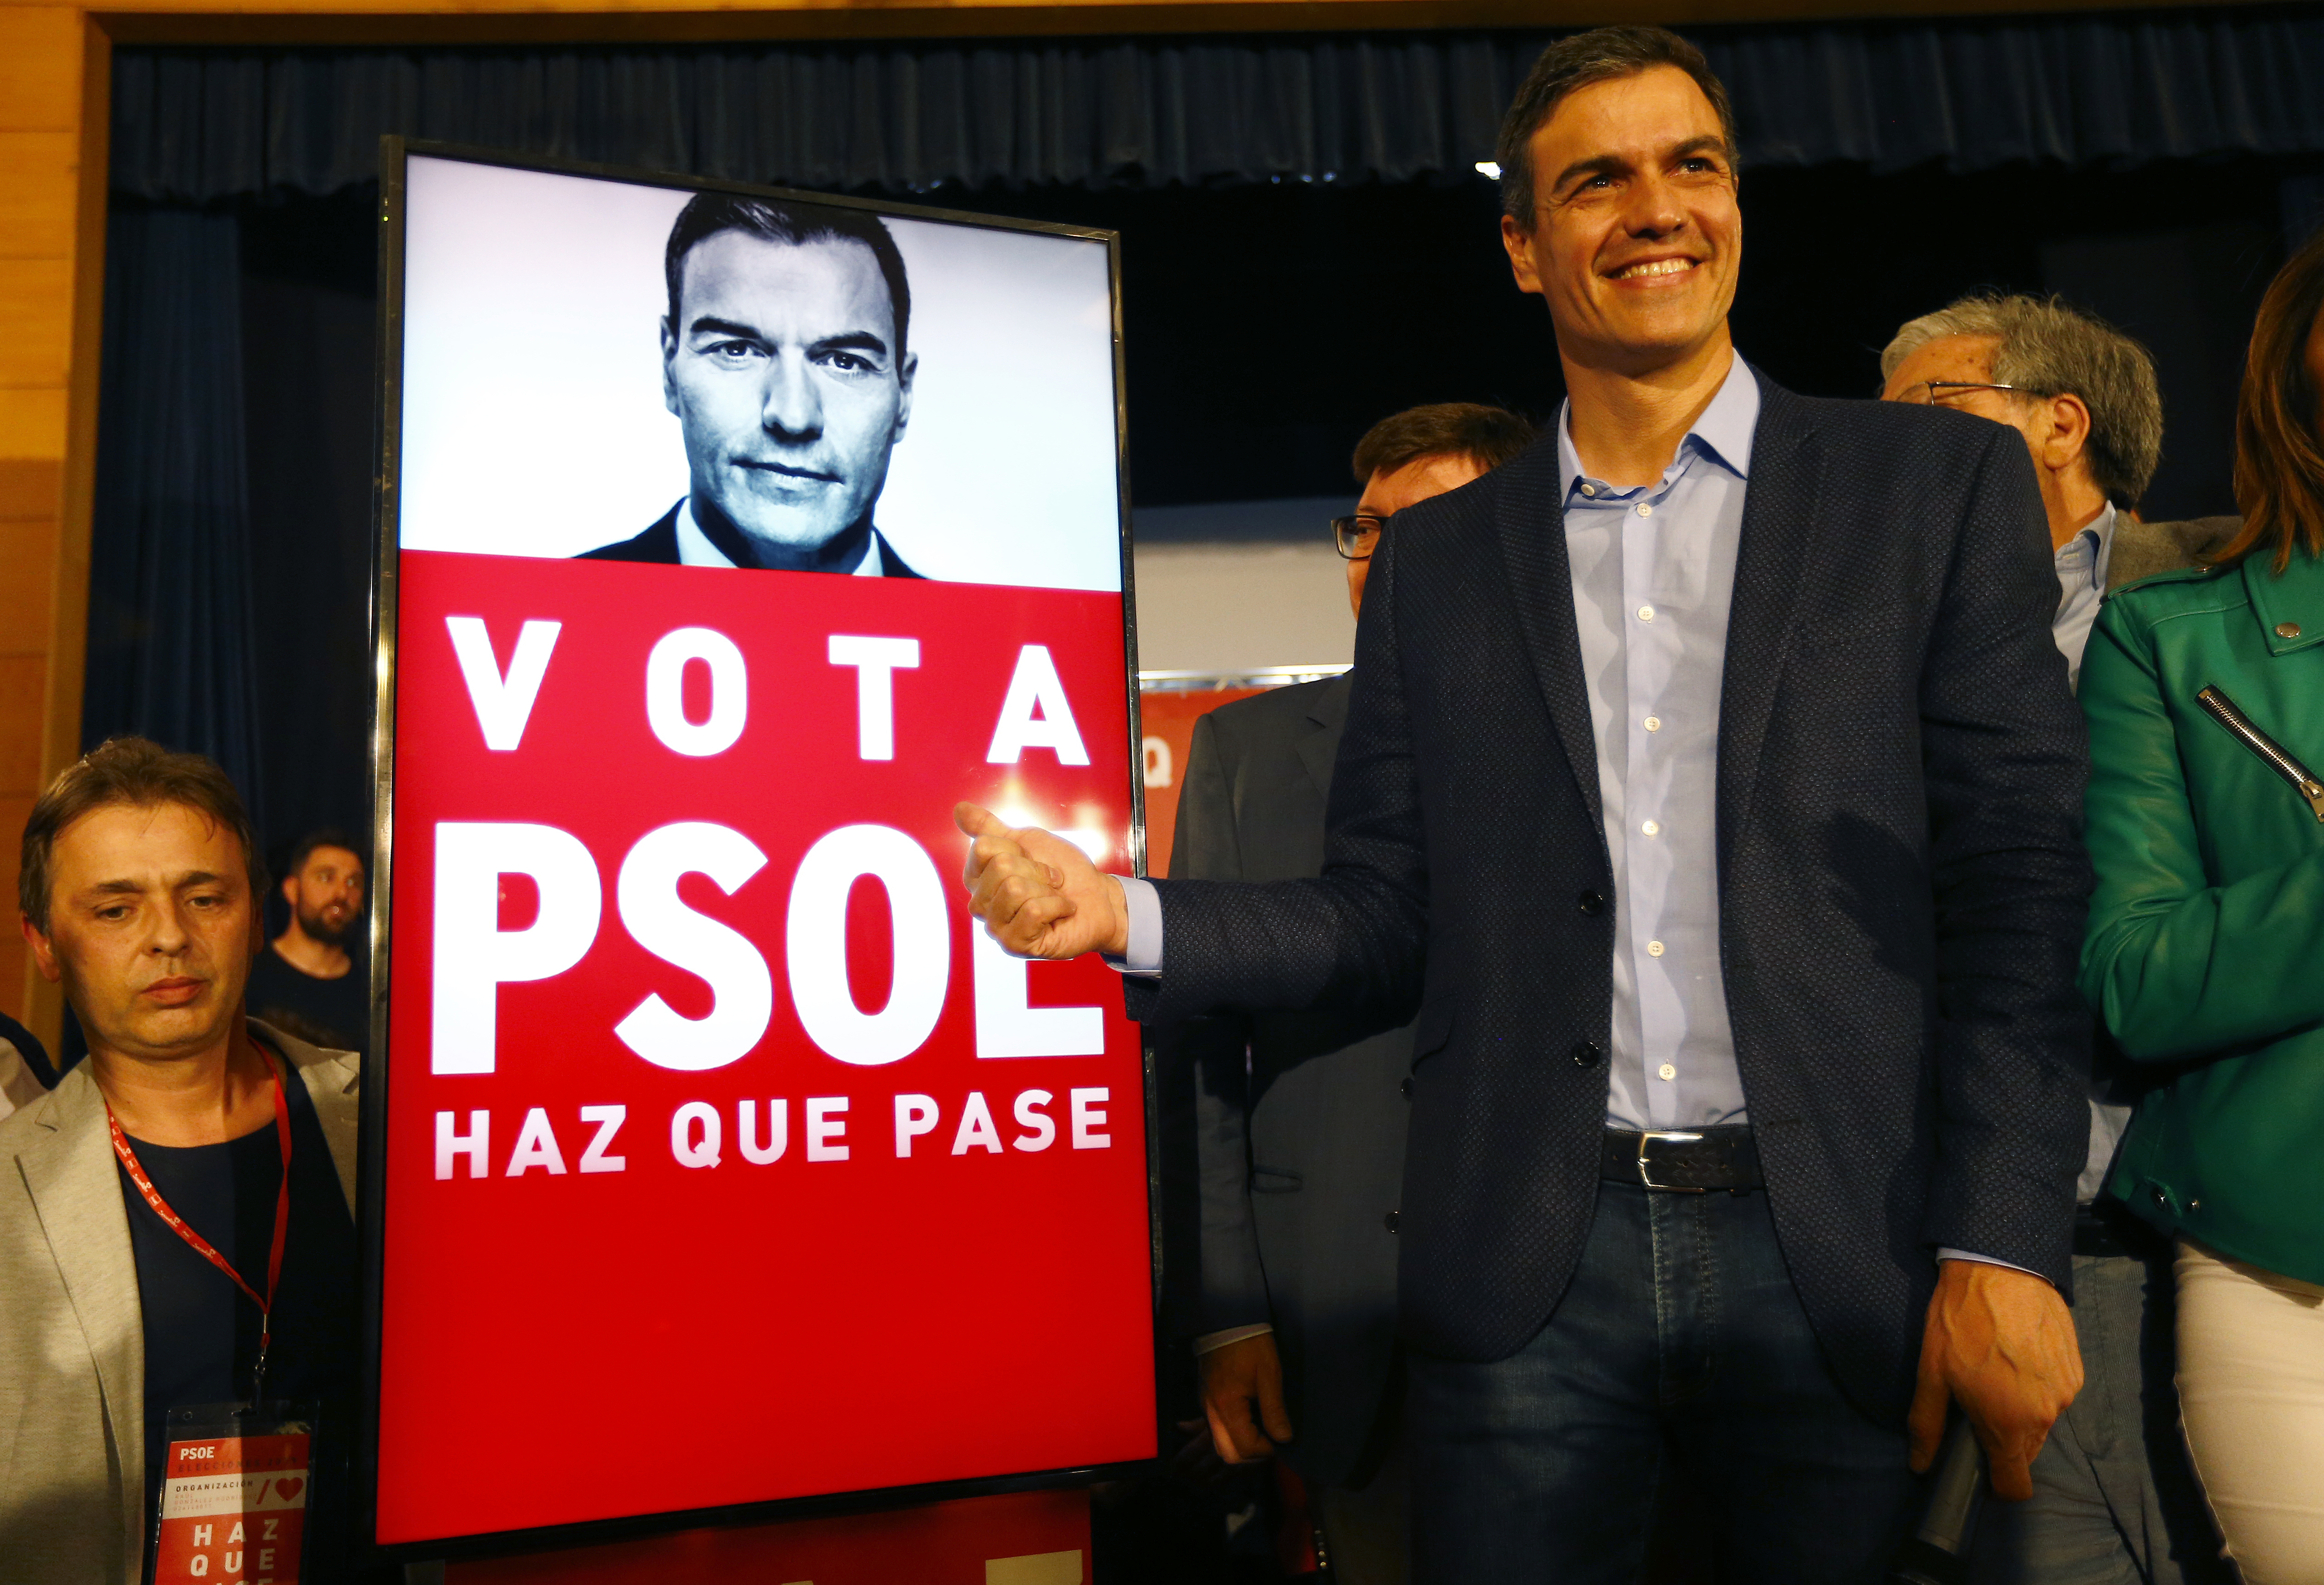 SEVILLE, SPAIN - APRIL 11: Spain's Prime Minister Pedro Sanchez and Socialist Party (PSOE) candidate for the Spain's general election reacts as he opens the election campaign on April 11, 2019 in Dos Hermanas, Spain. (Marcelo del Pozo/Getty Images)